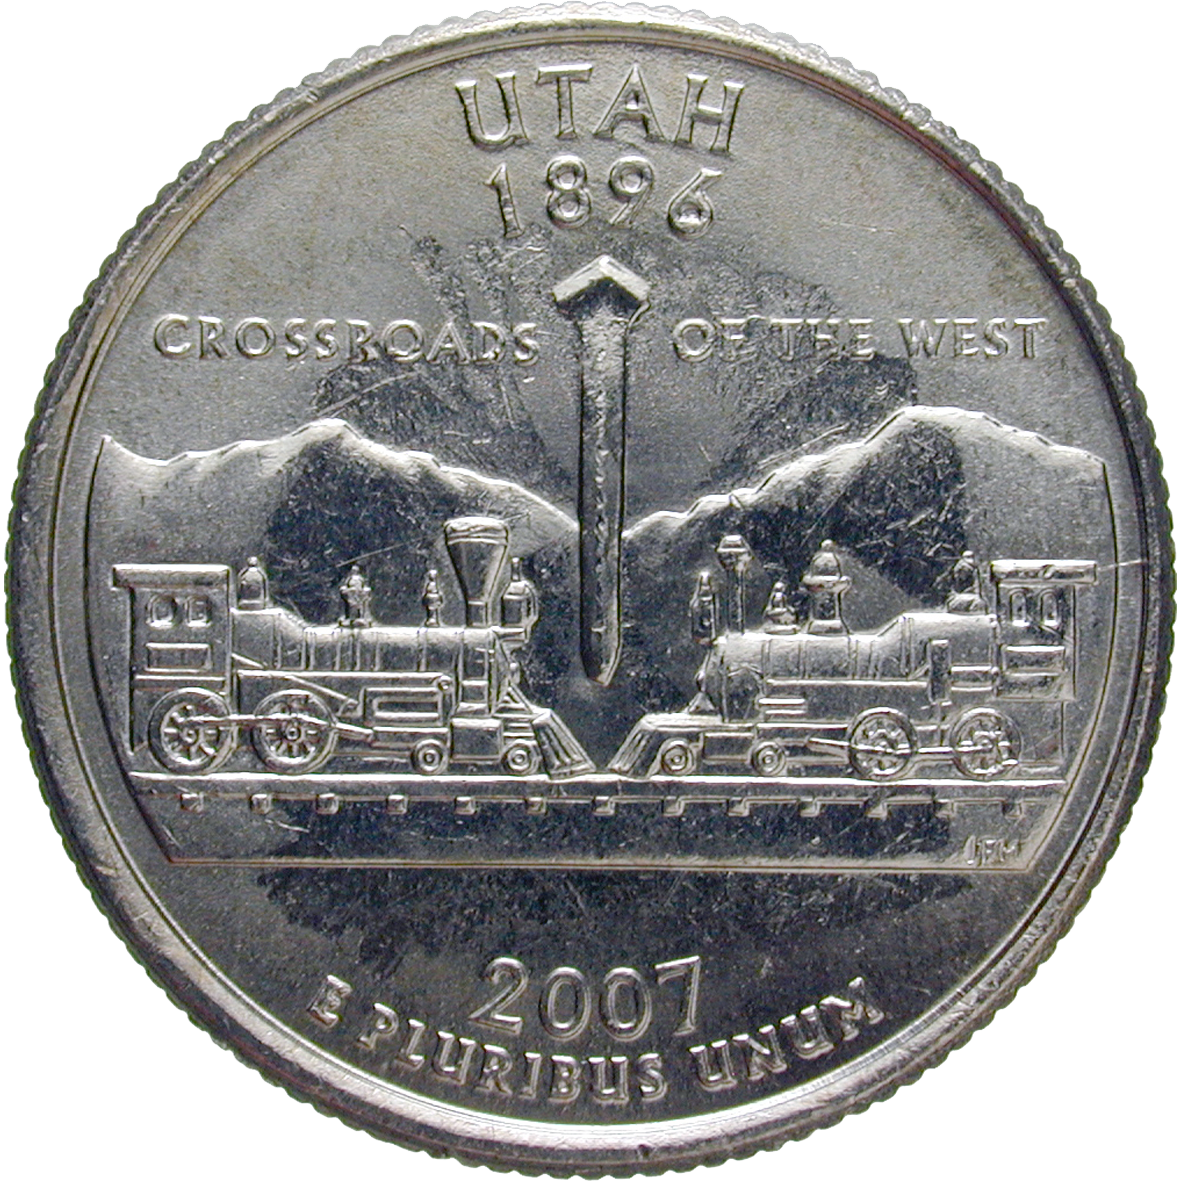 United States of America, Quarter Dollar 2007 (reverse)